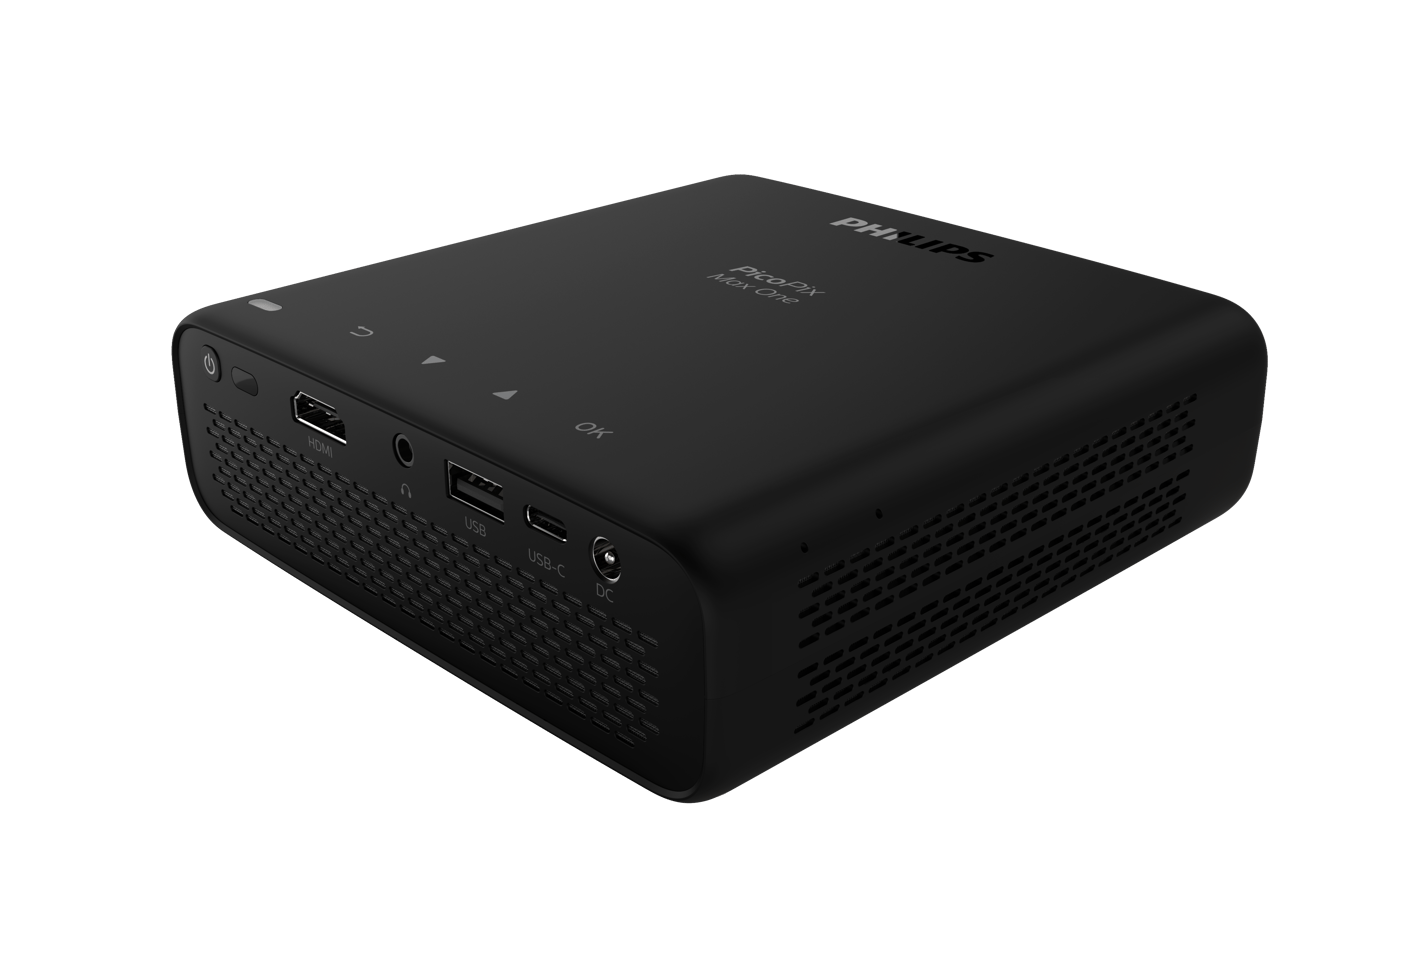 The PicoPix Micro 2 comes with HDMI and USB-C connectivity, and its internal battery should be good for up to three hours of use between charges